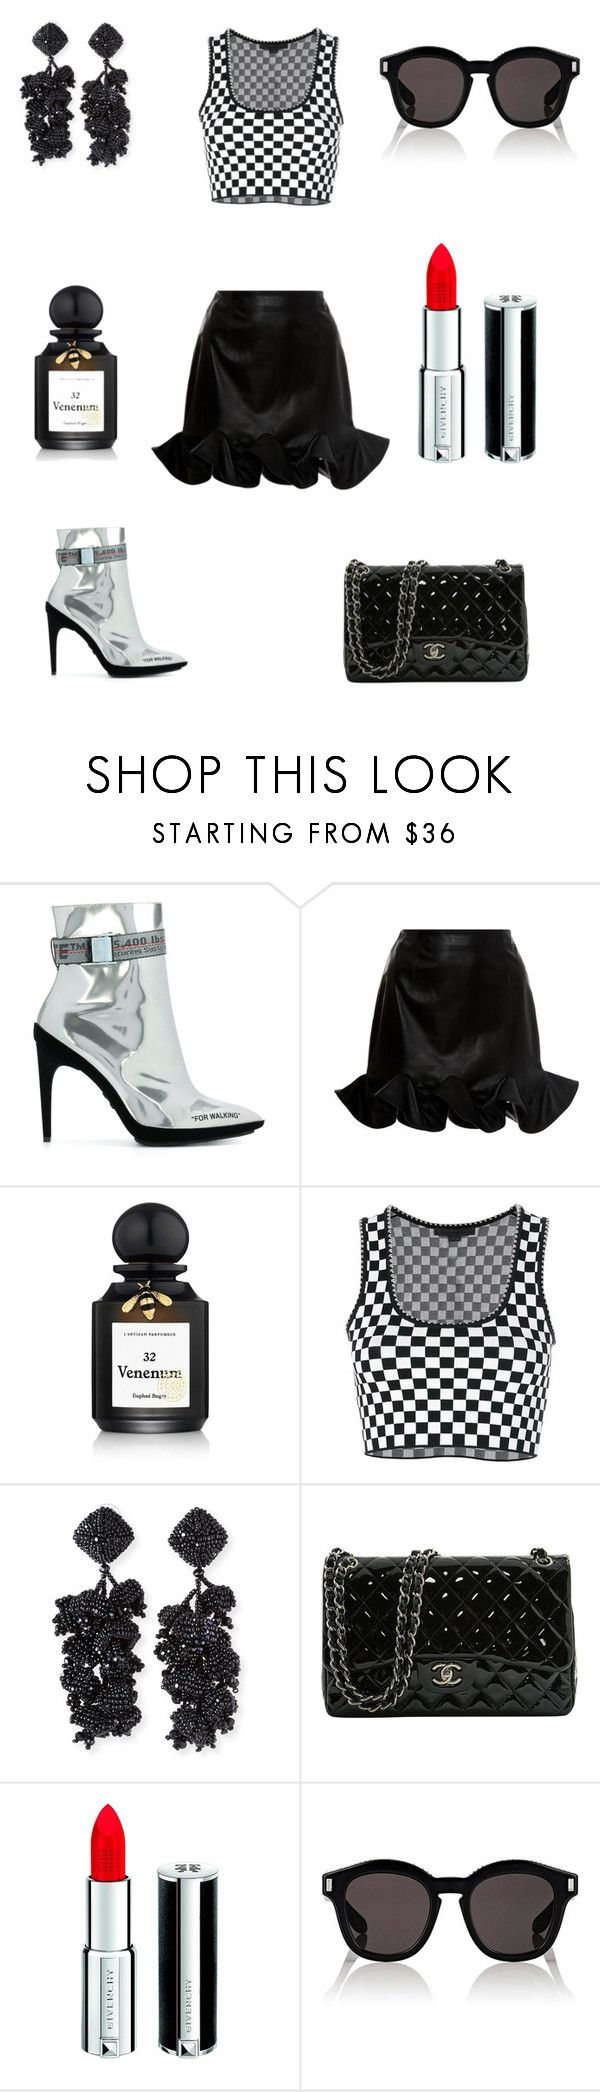 """""""Fancy Nancy"""" by irahsleon ❤ liked on Polyvore featuring Off-White, Zeynep Arçay, L'Artisan Parfumeur, Alexander Wang, NOIR Sachin + Babi, Chanel and Givenchy"""